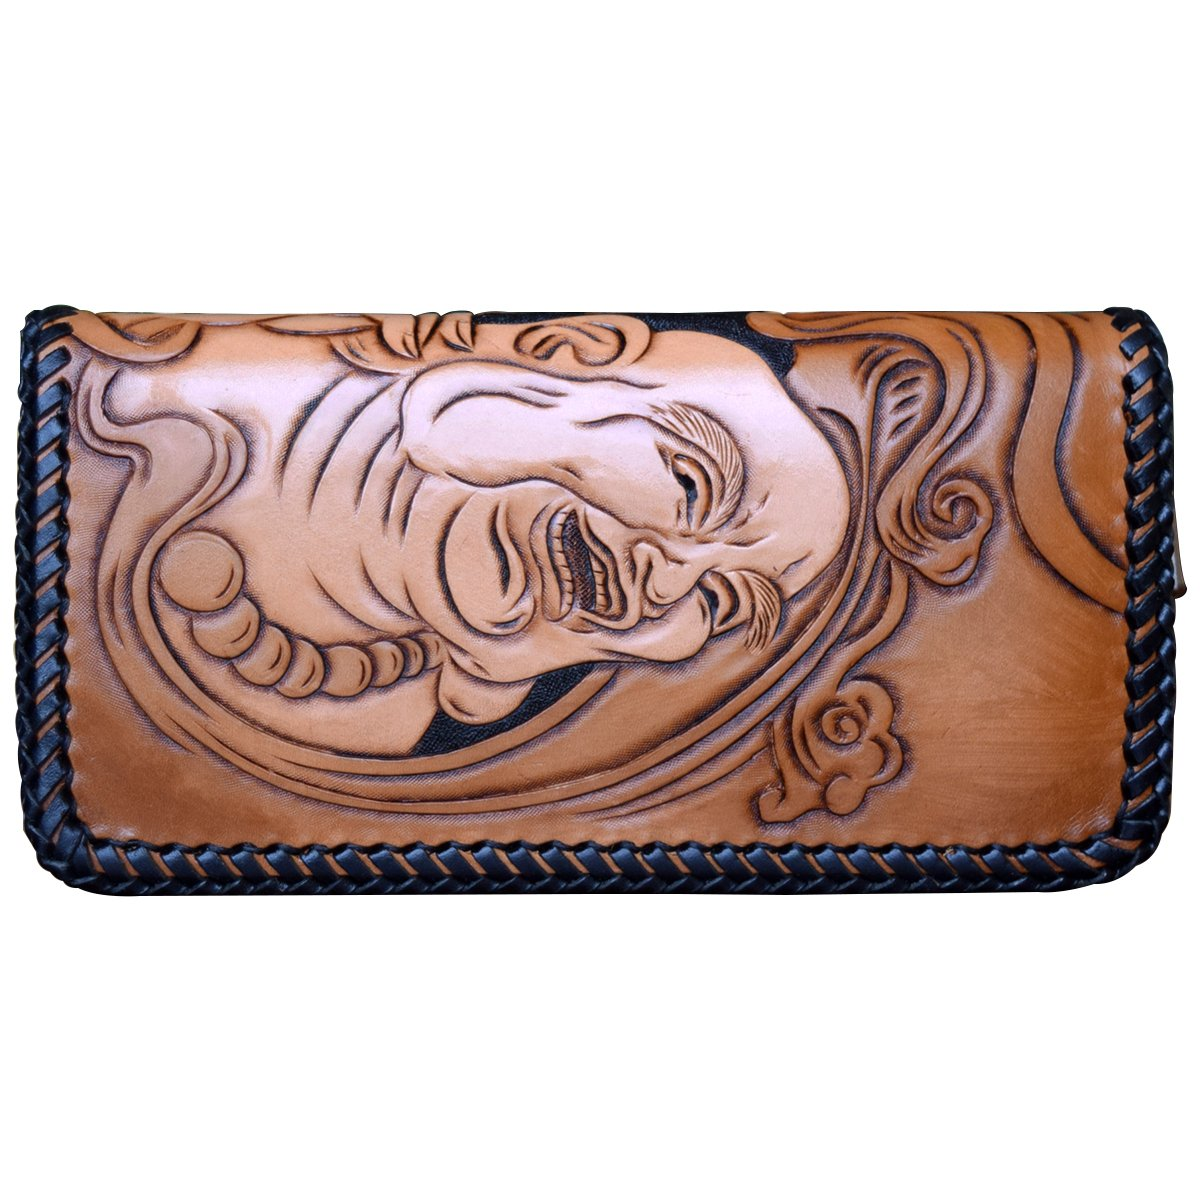 OLG.YAT Vegetable tanned leather Retro Genuine Leather Men's Wallets WL20XKCK by OLG.YAT